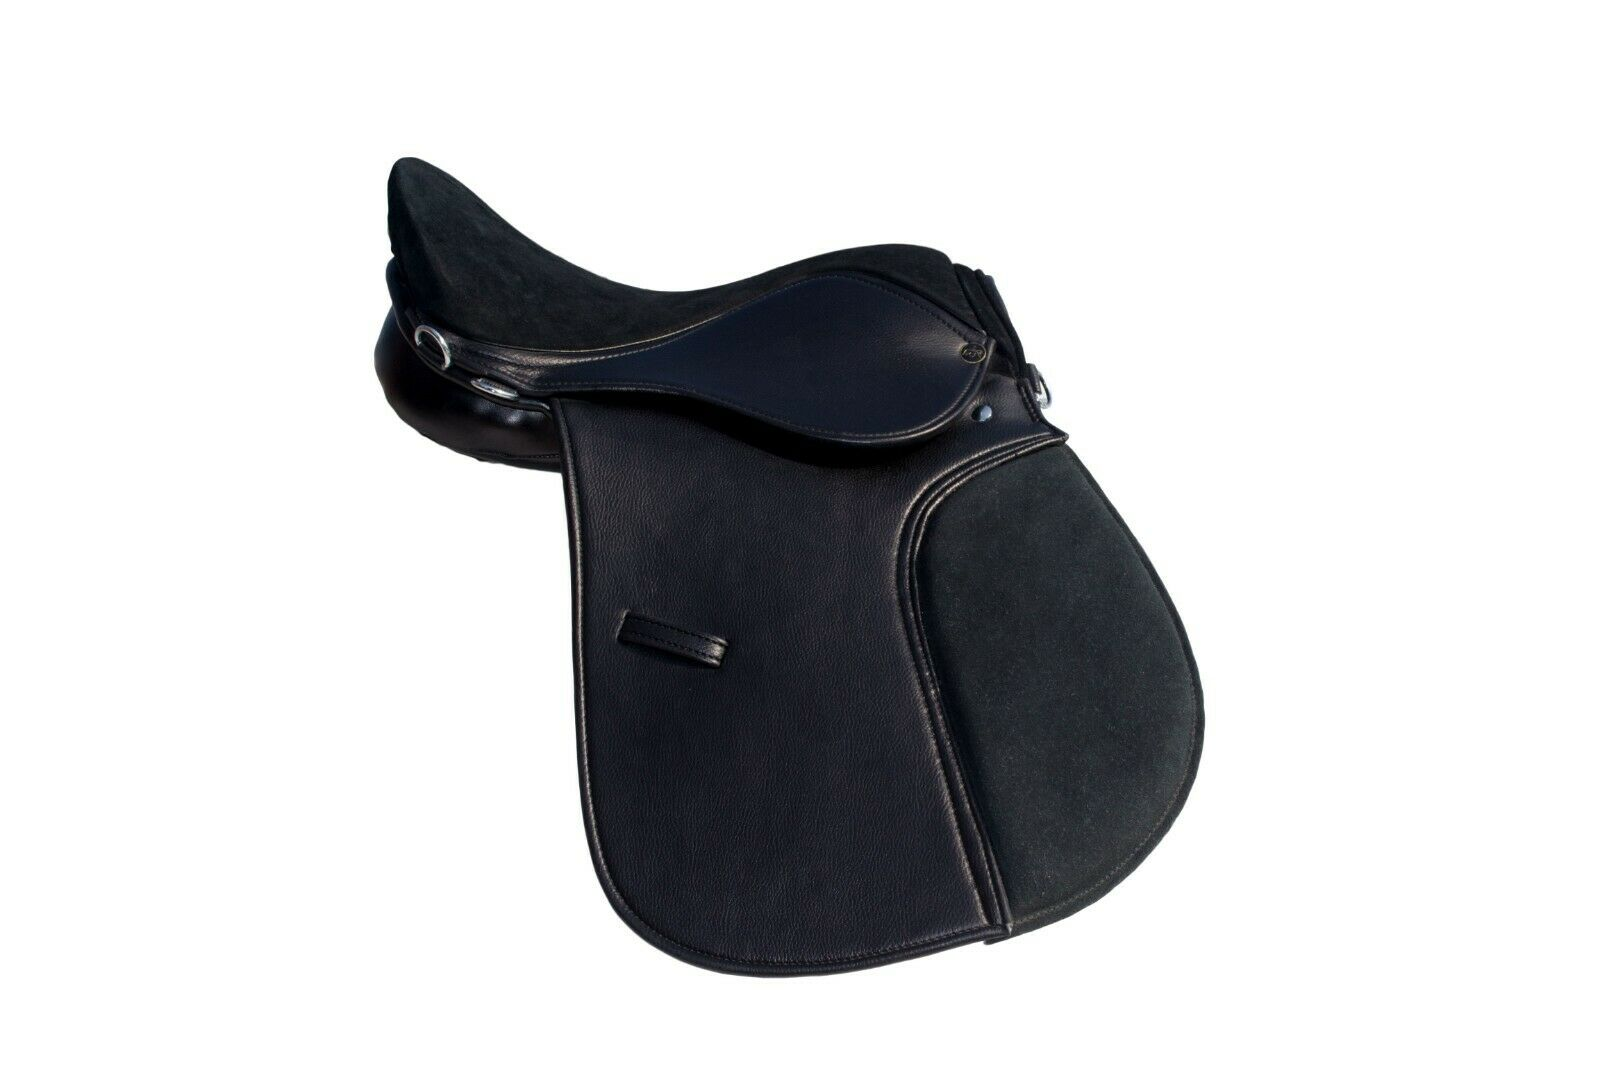 General purpose synthetic halflinger cuir horse suede saddle 16,17,18large fit